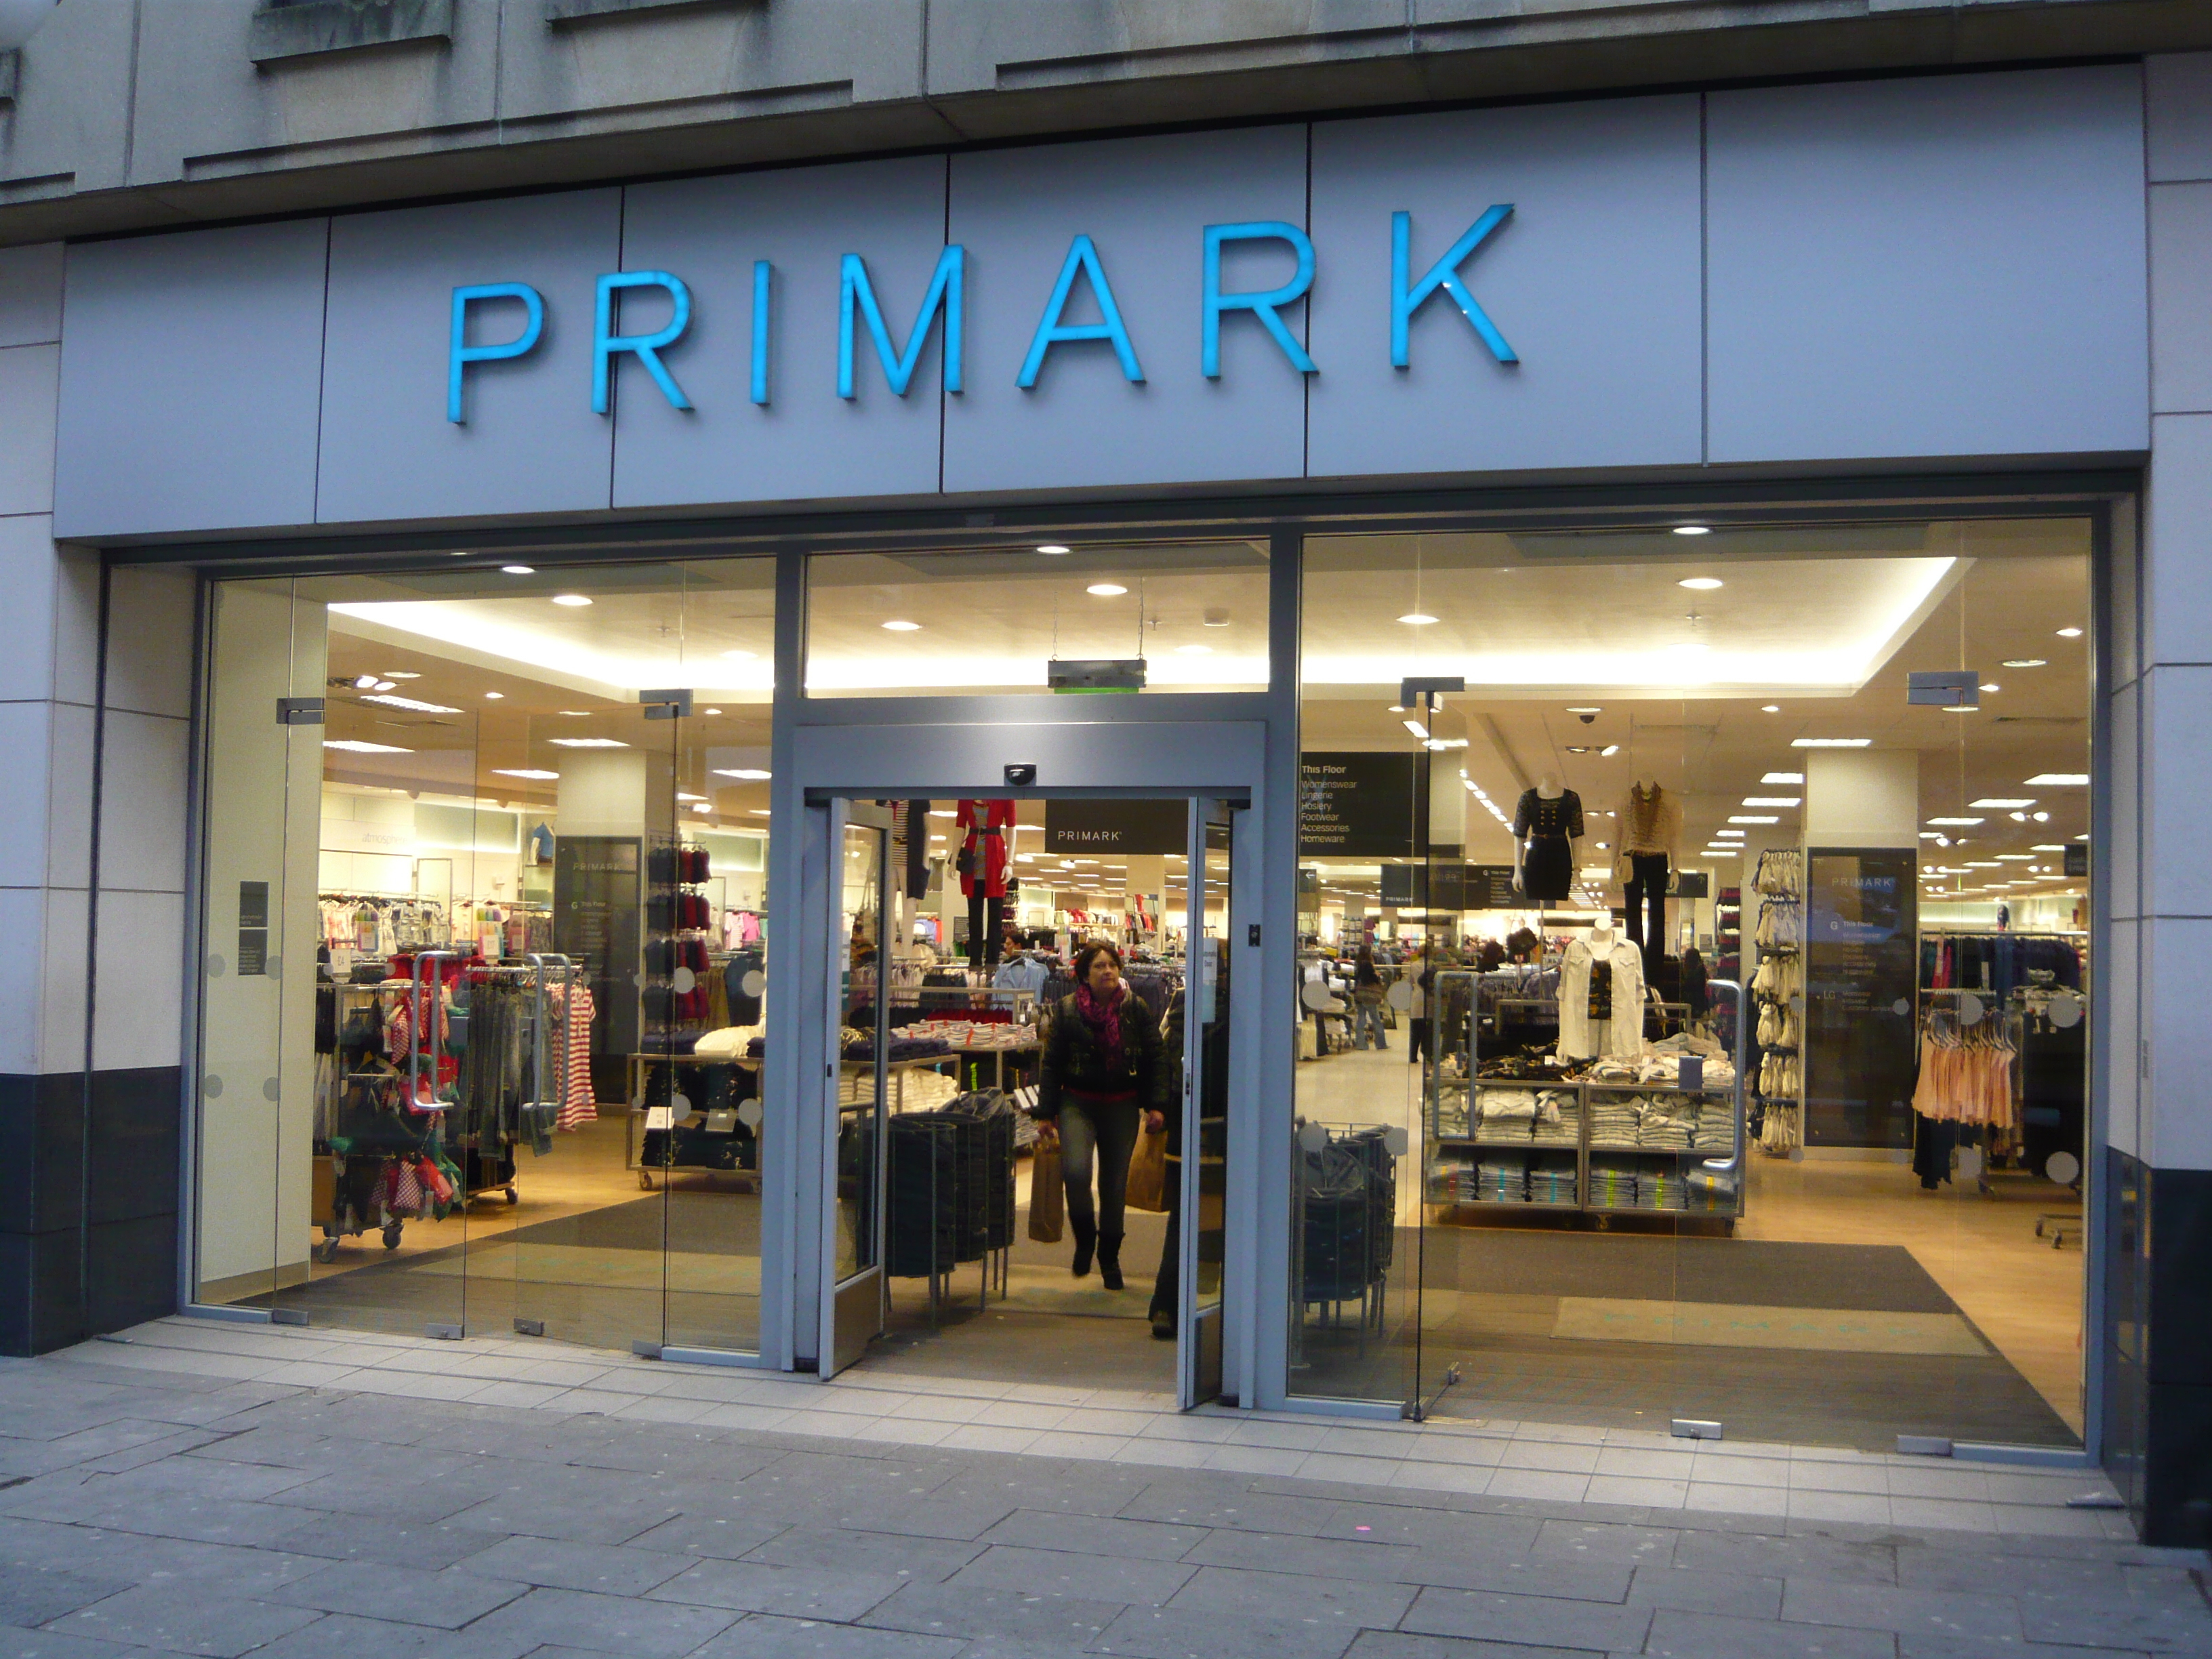 Unit 4 Marketing Principles Assignment Primark, Business, Marketing, Marketing management, Management, Marketing Principles, Unit 4 Marketing Principles Assignment Primark, Assignment Help UK, Assignment Help, Online Assignment Help, Assignment Writing Service, Assignment Help Coventry